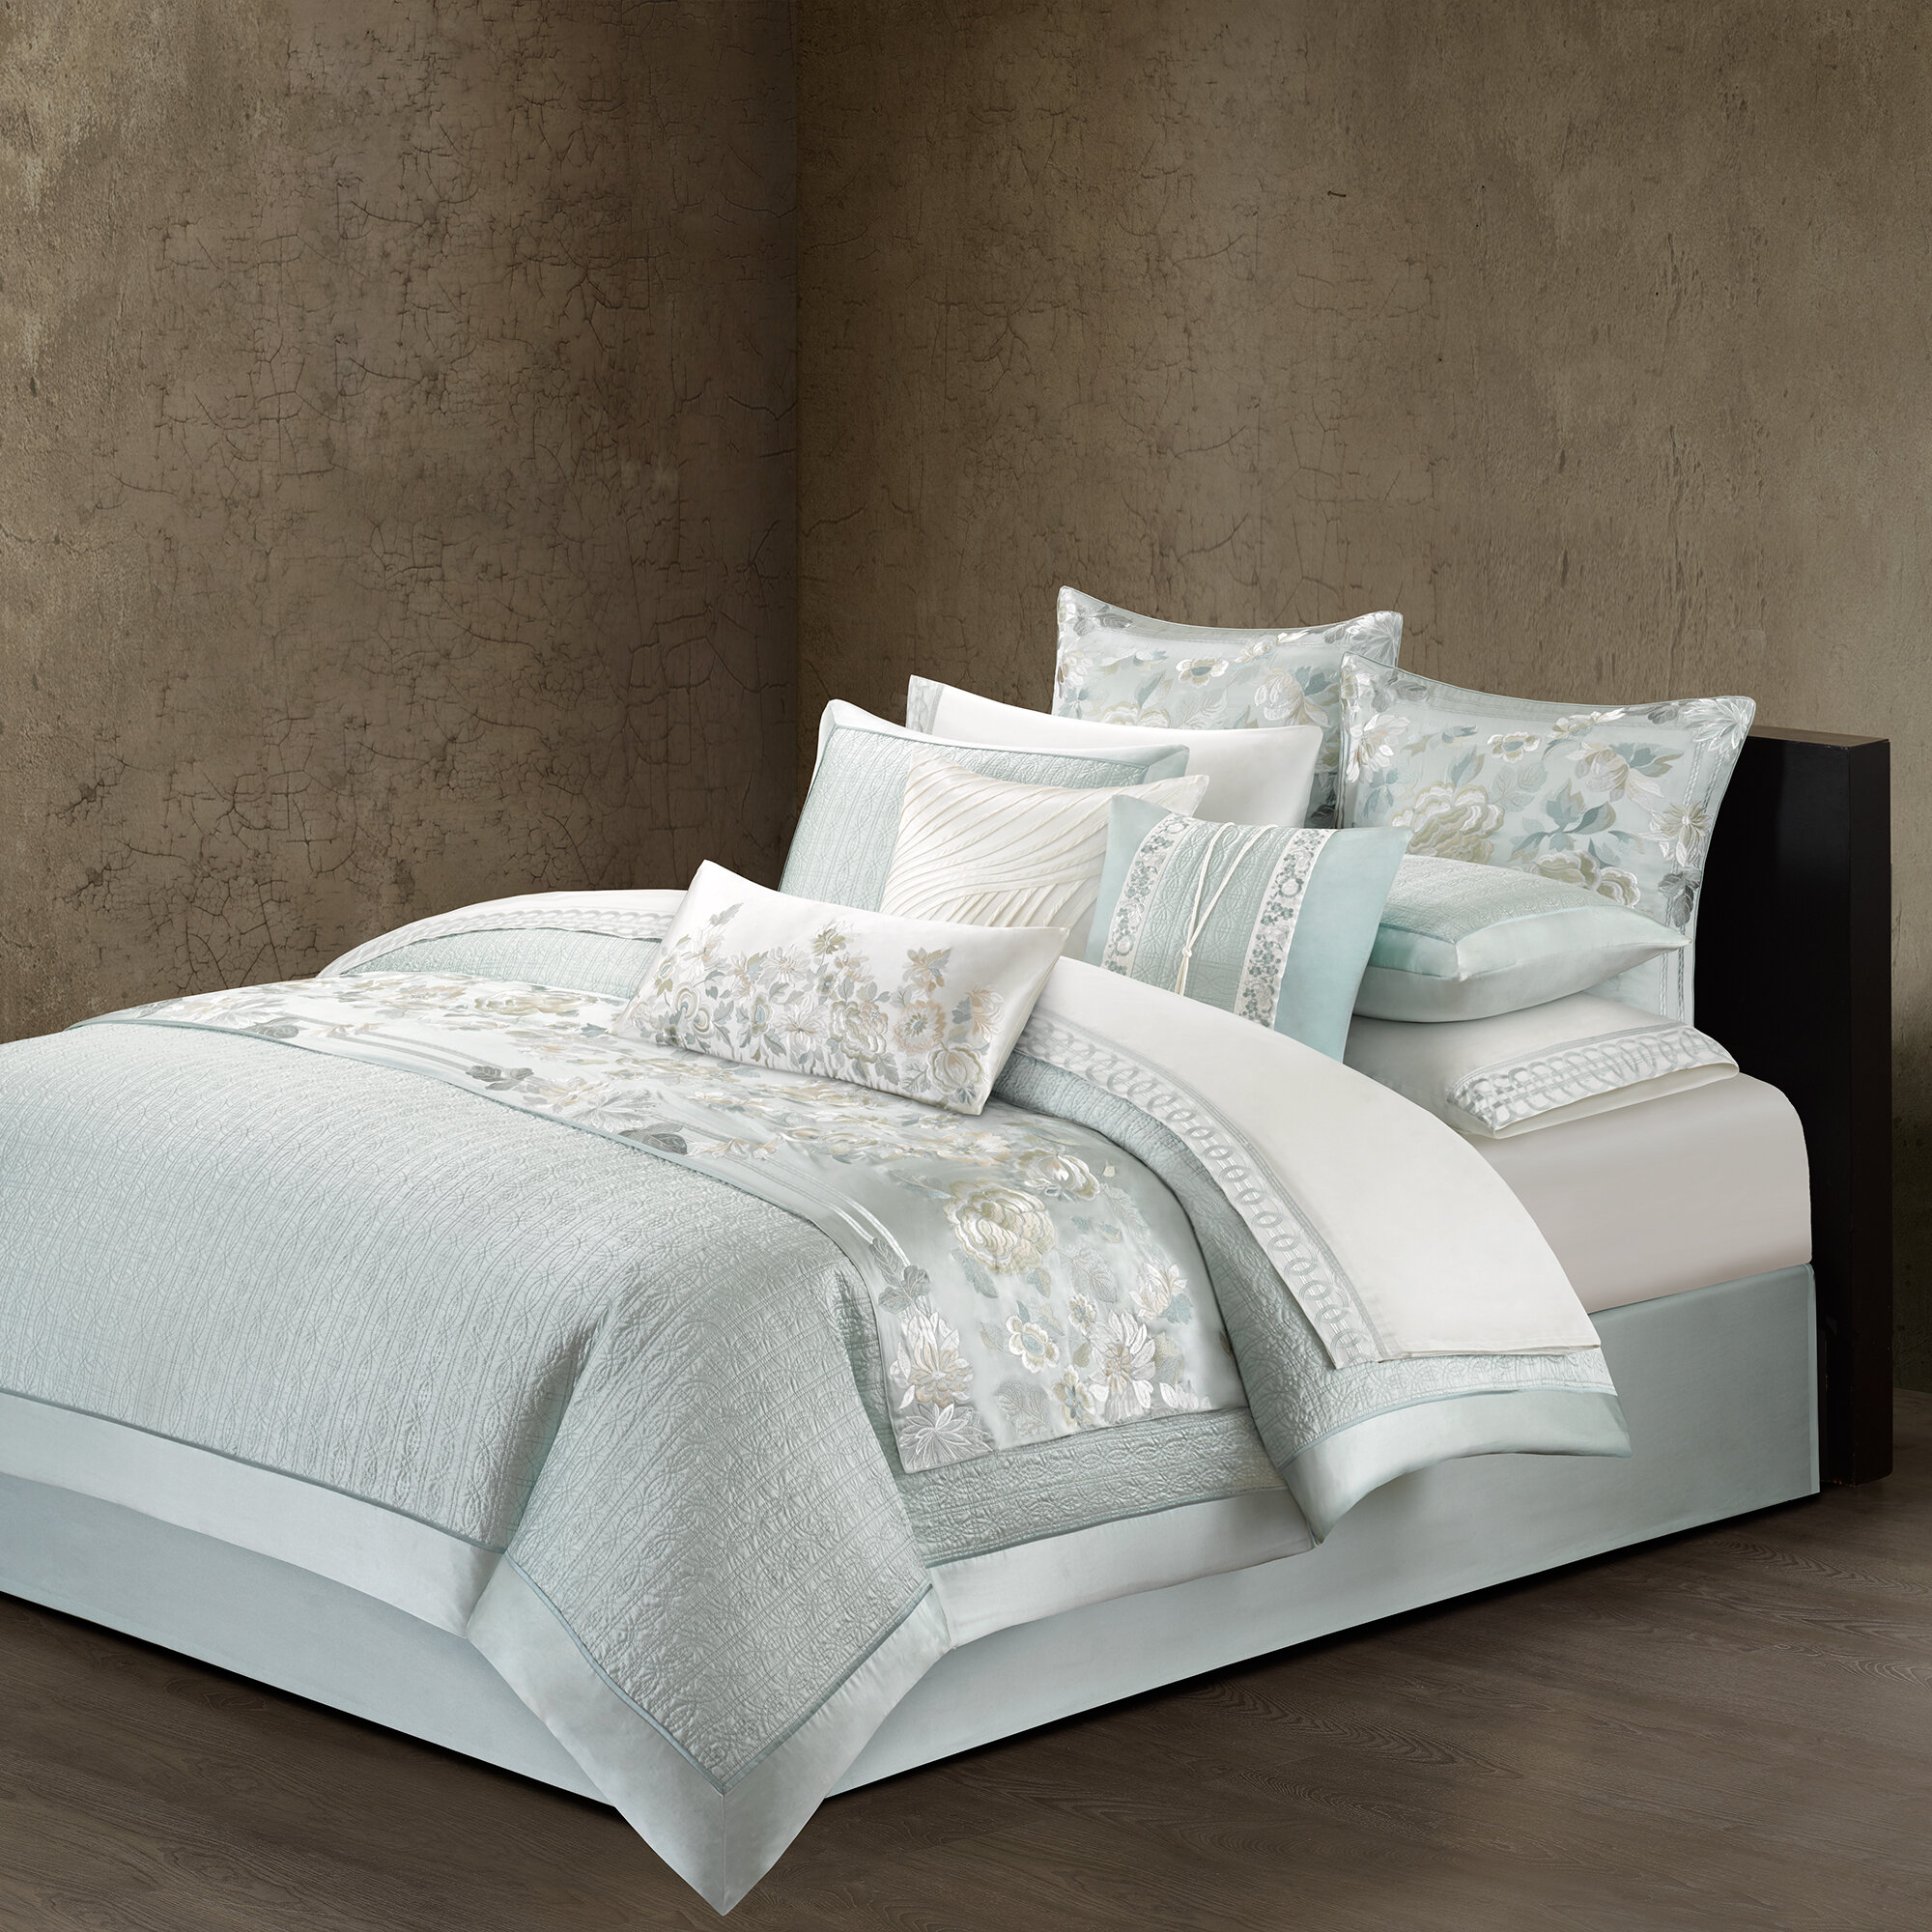 Natori canton quilted duvet cover wayfair